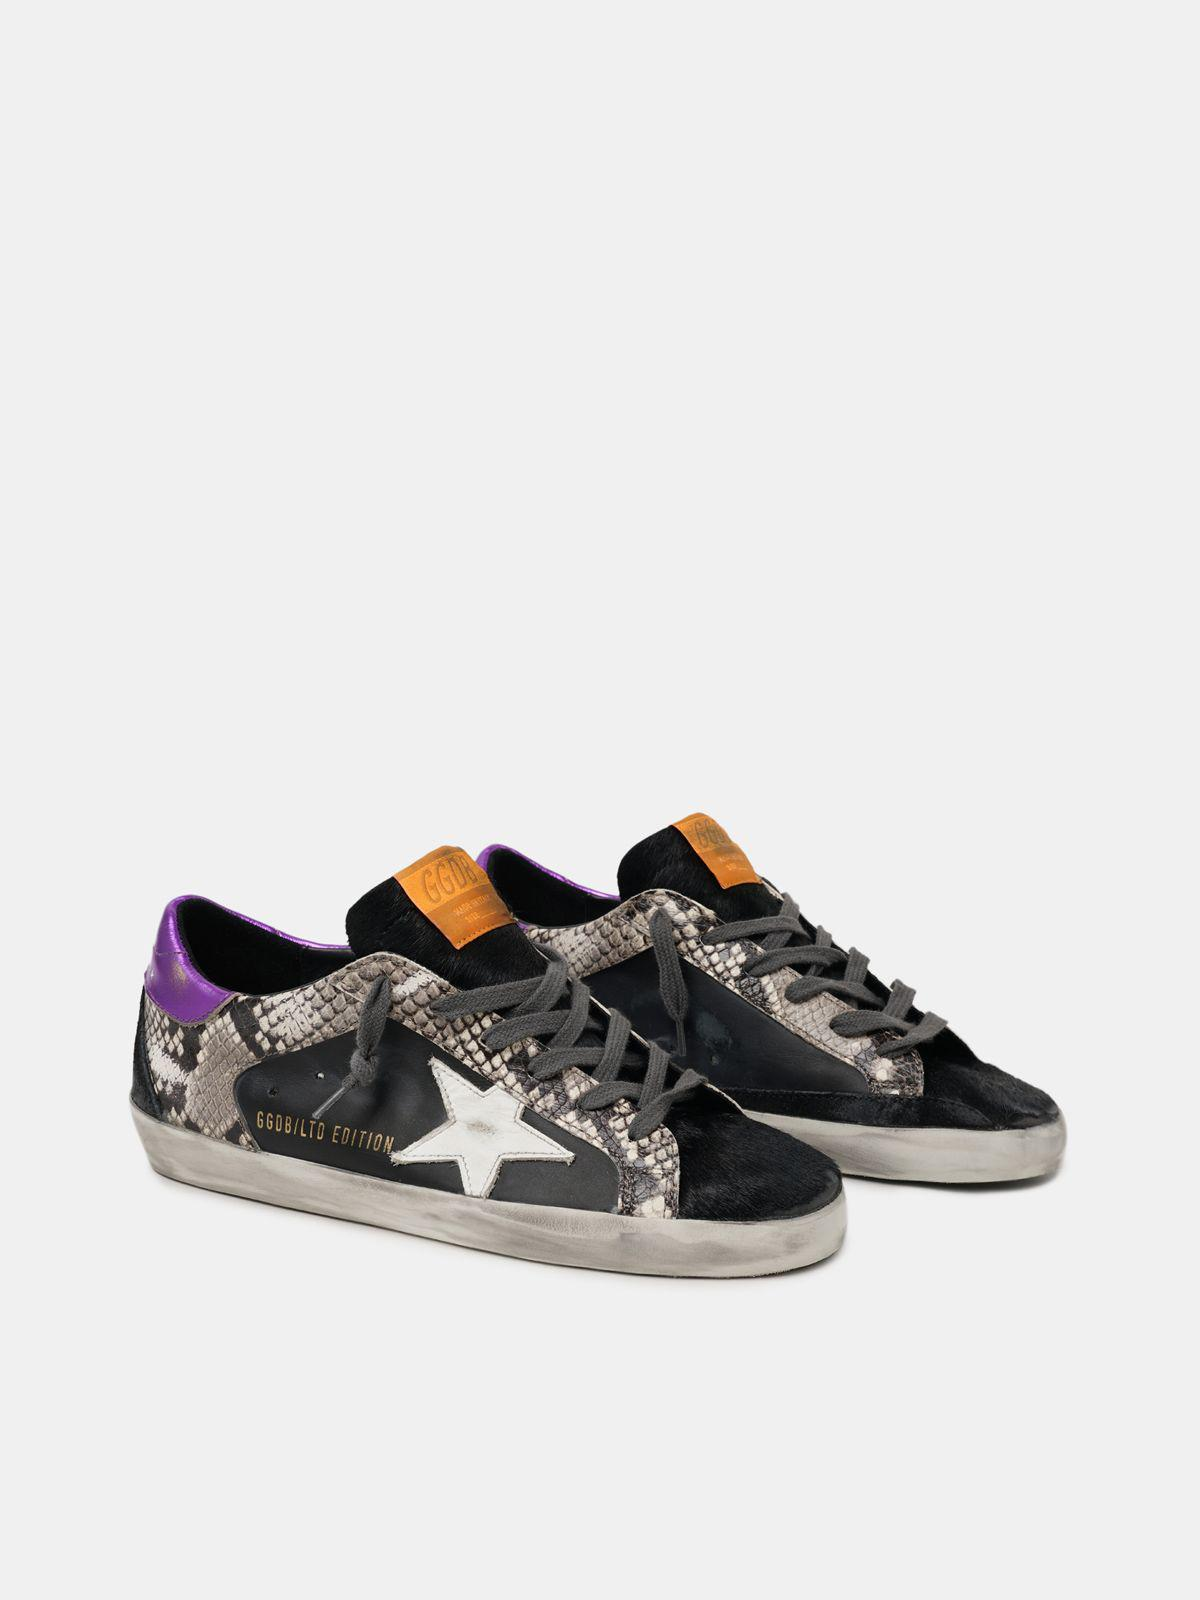 Women's Limited Edition LAB snake-print Super-Star sneakers with purple heel tab 2